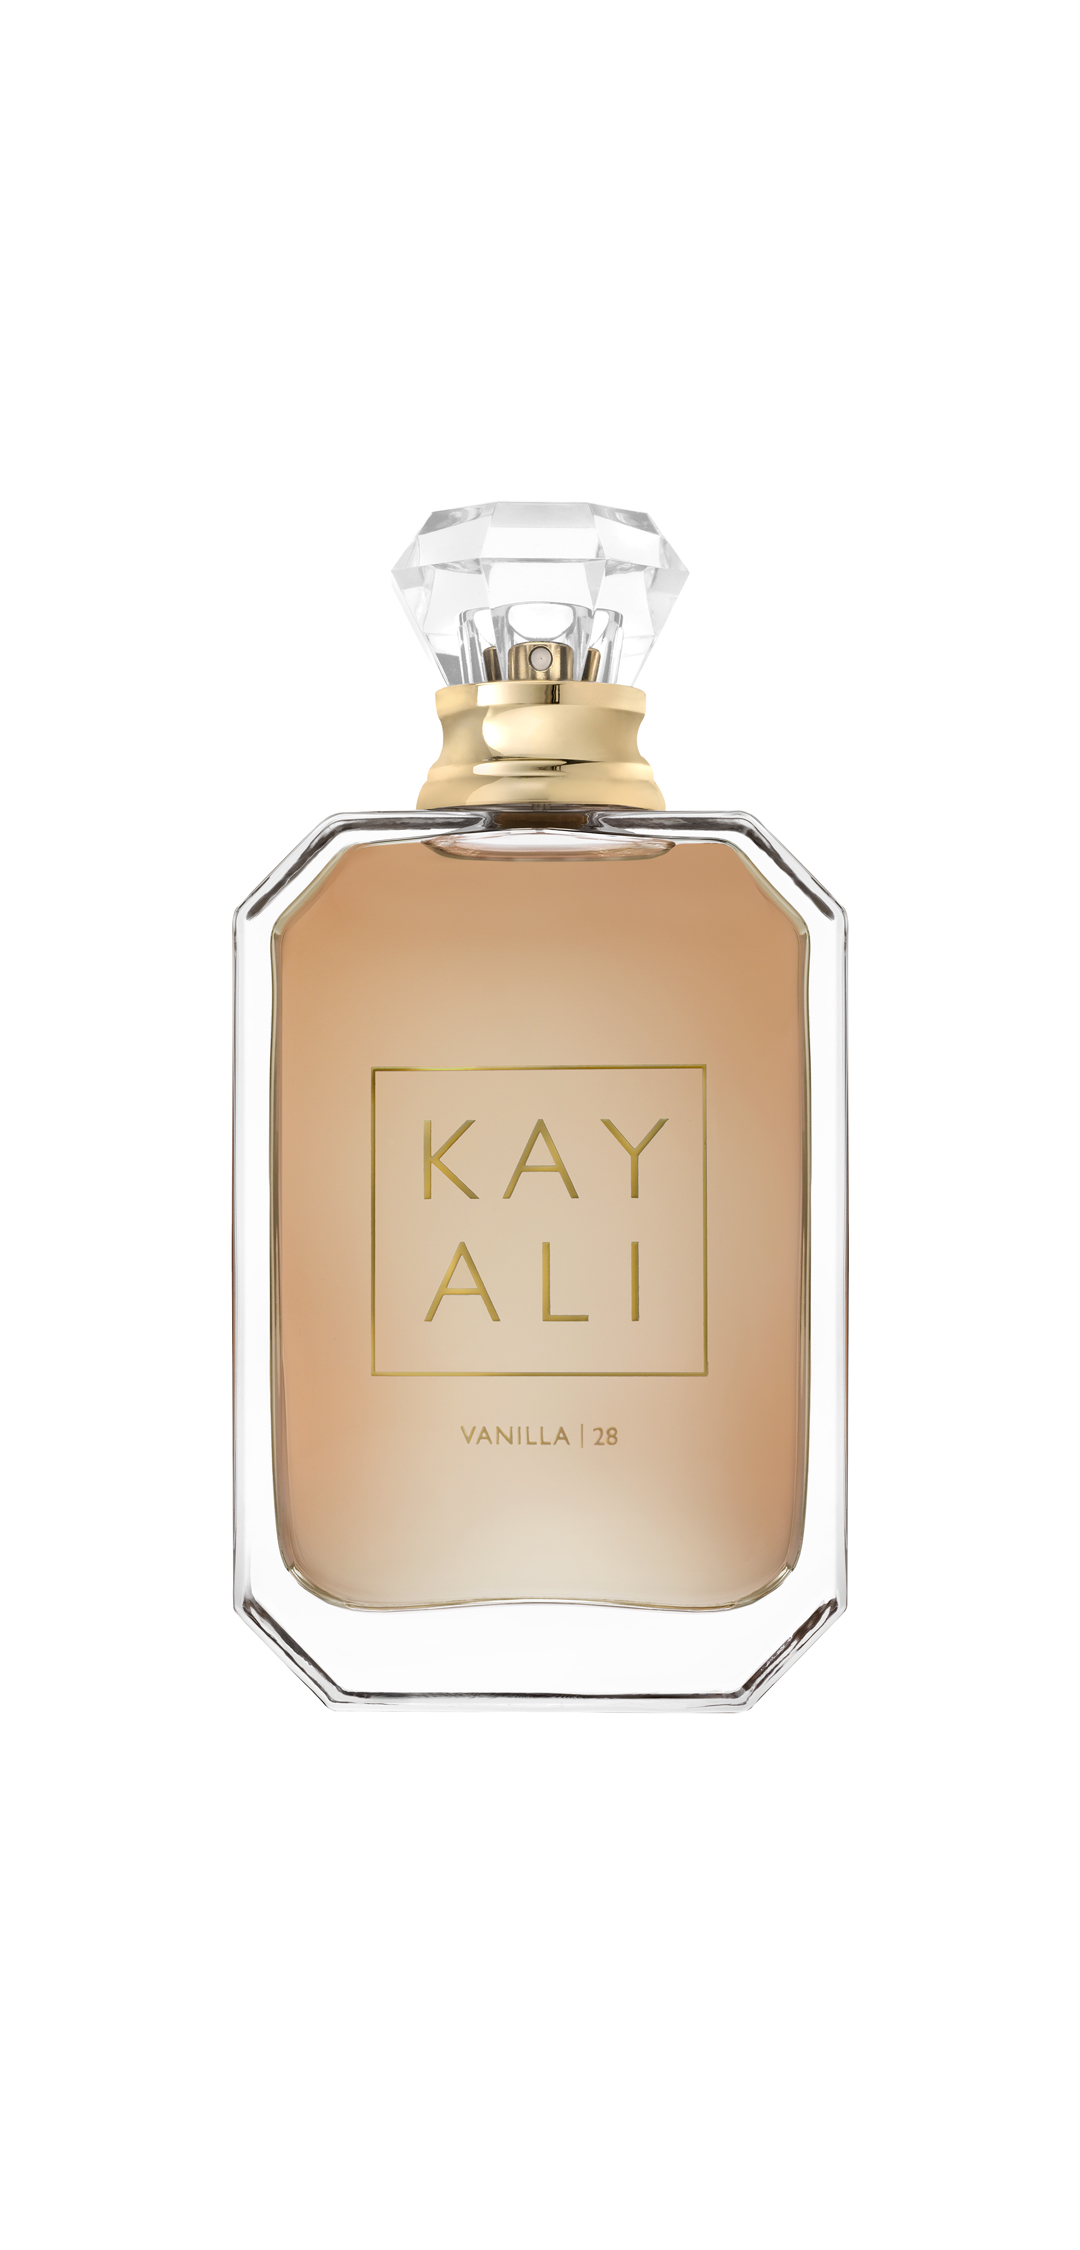 kayali vanilla winter fragrance